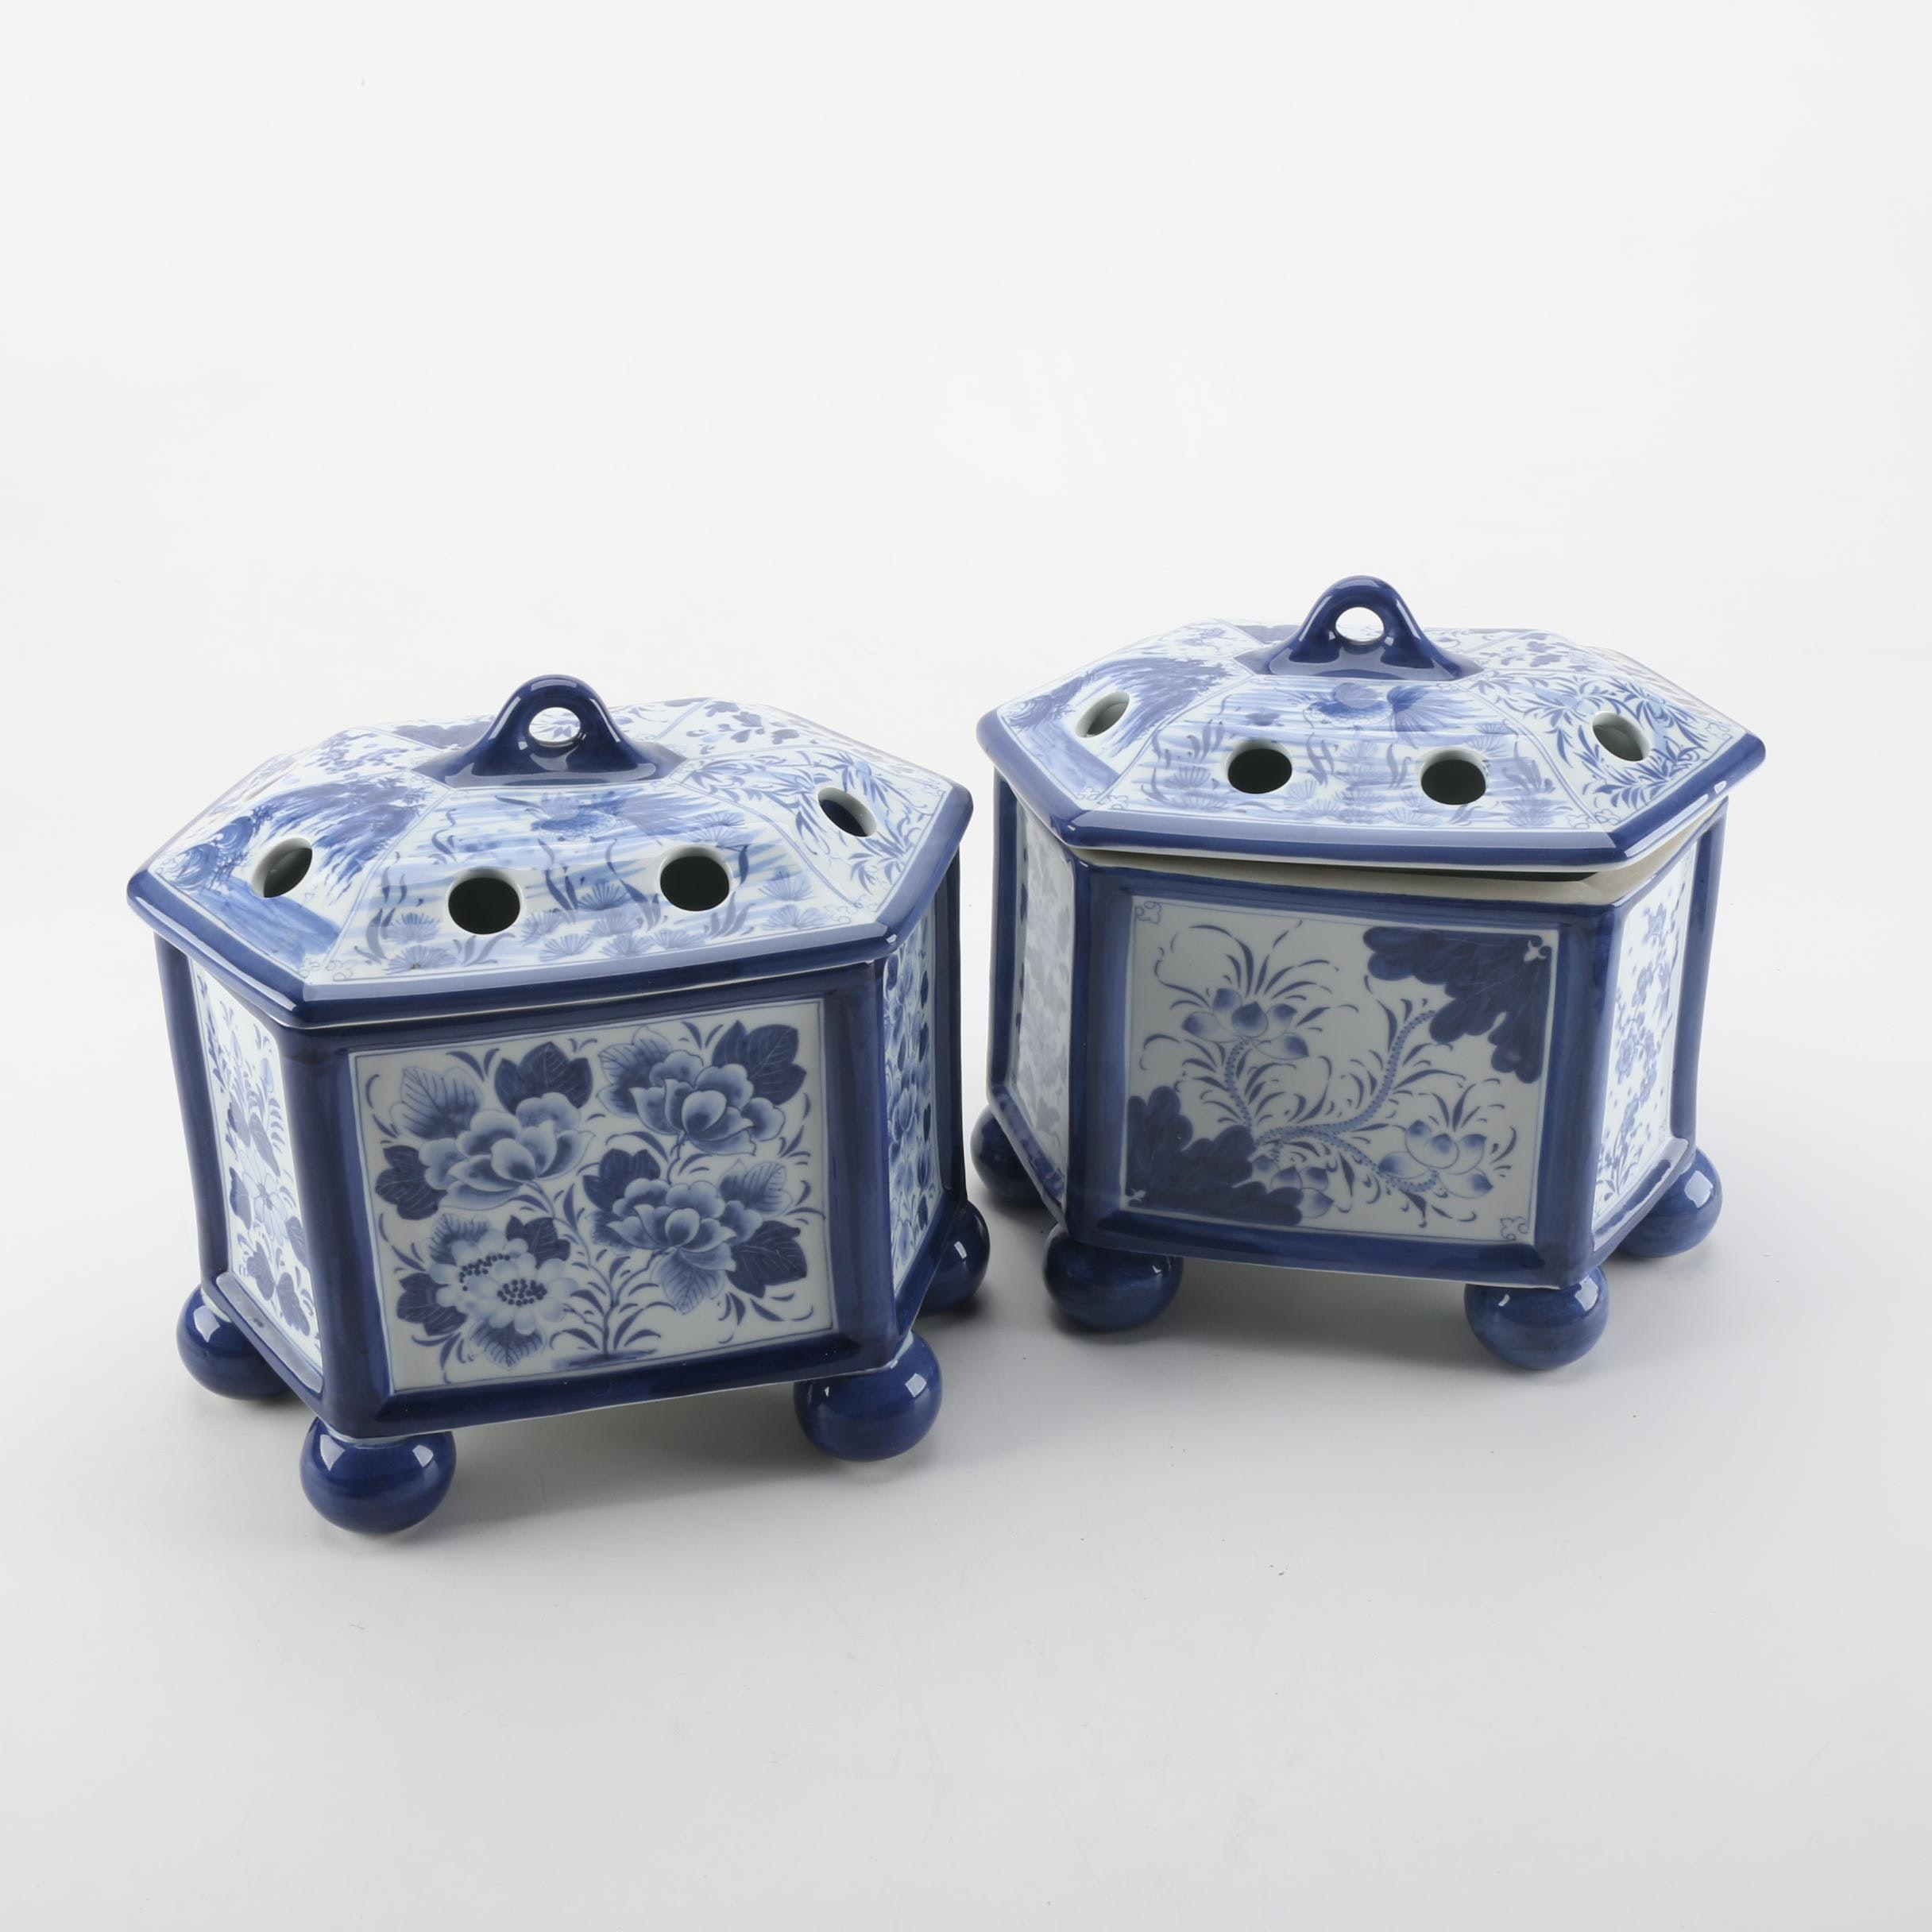 Pair of Maitland Smith Blue and White Ceramic Flower Frogs